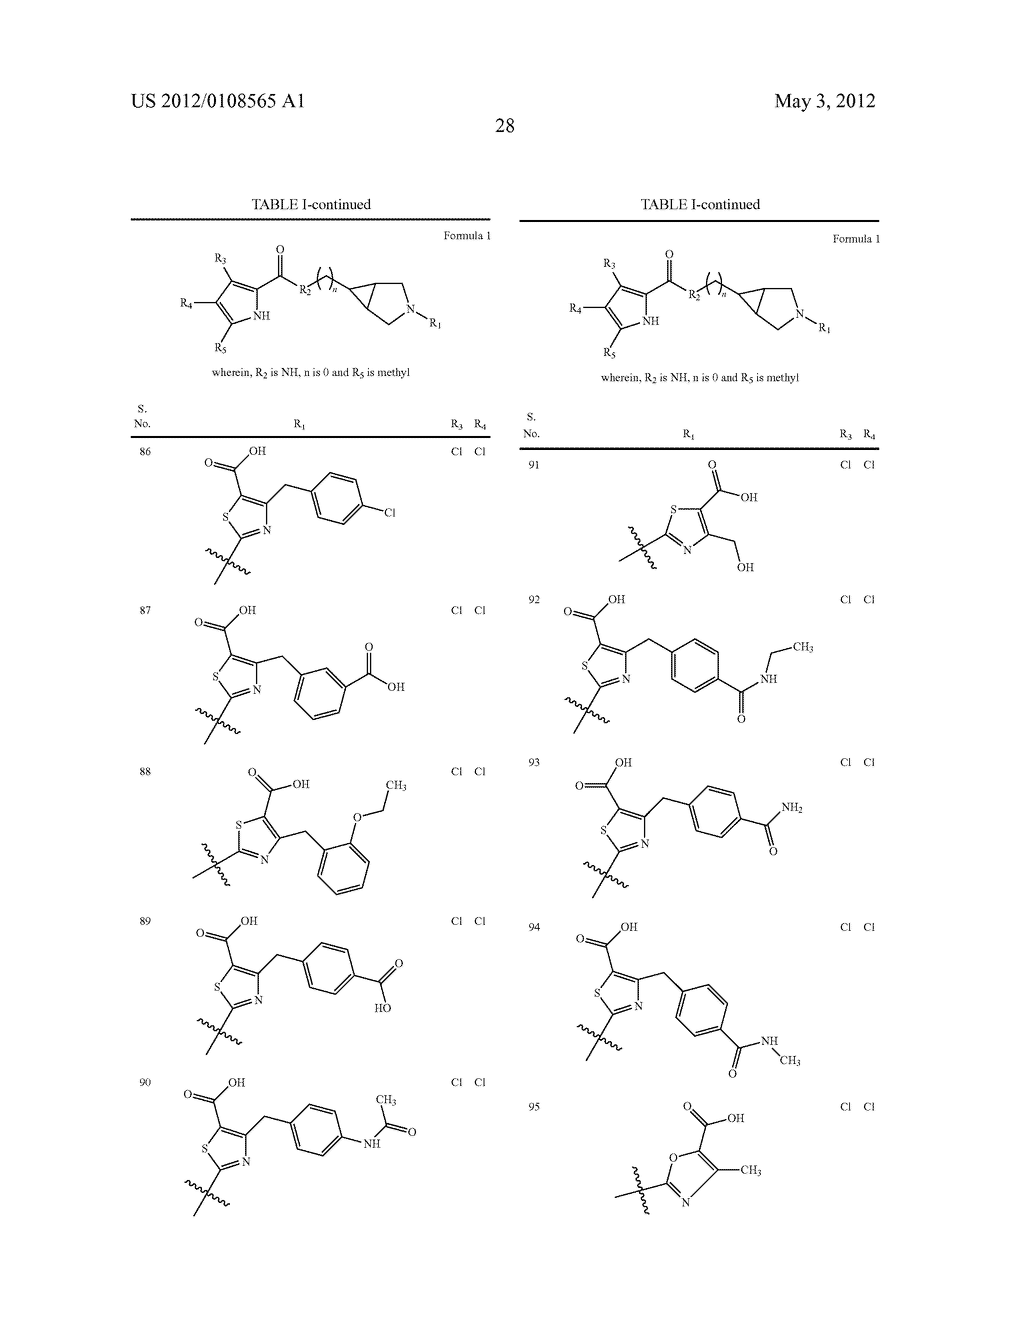 PYRROLE CARBOXYLIC ACID DERIVATIVES AS ANTIBACTERIAL AGENTS - diagram, schematic, and image 29